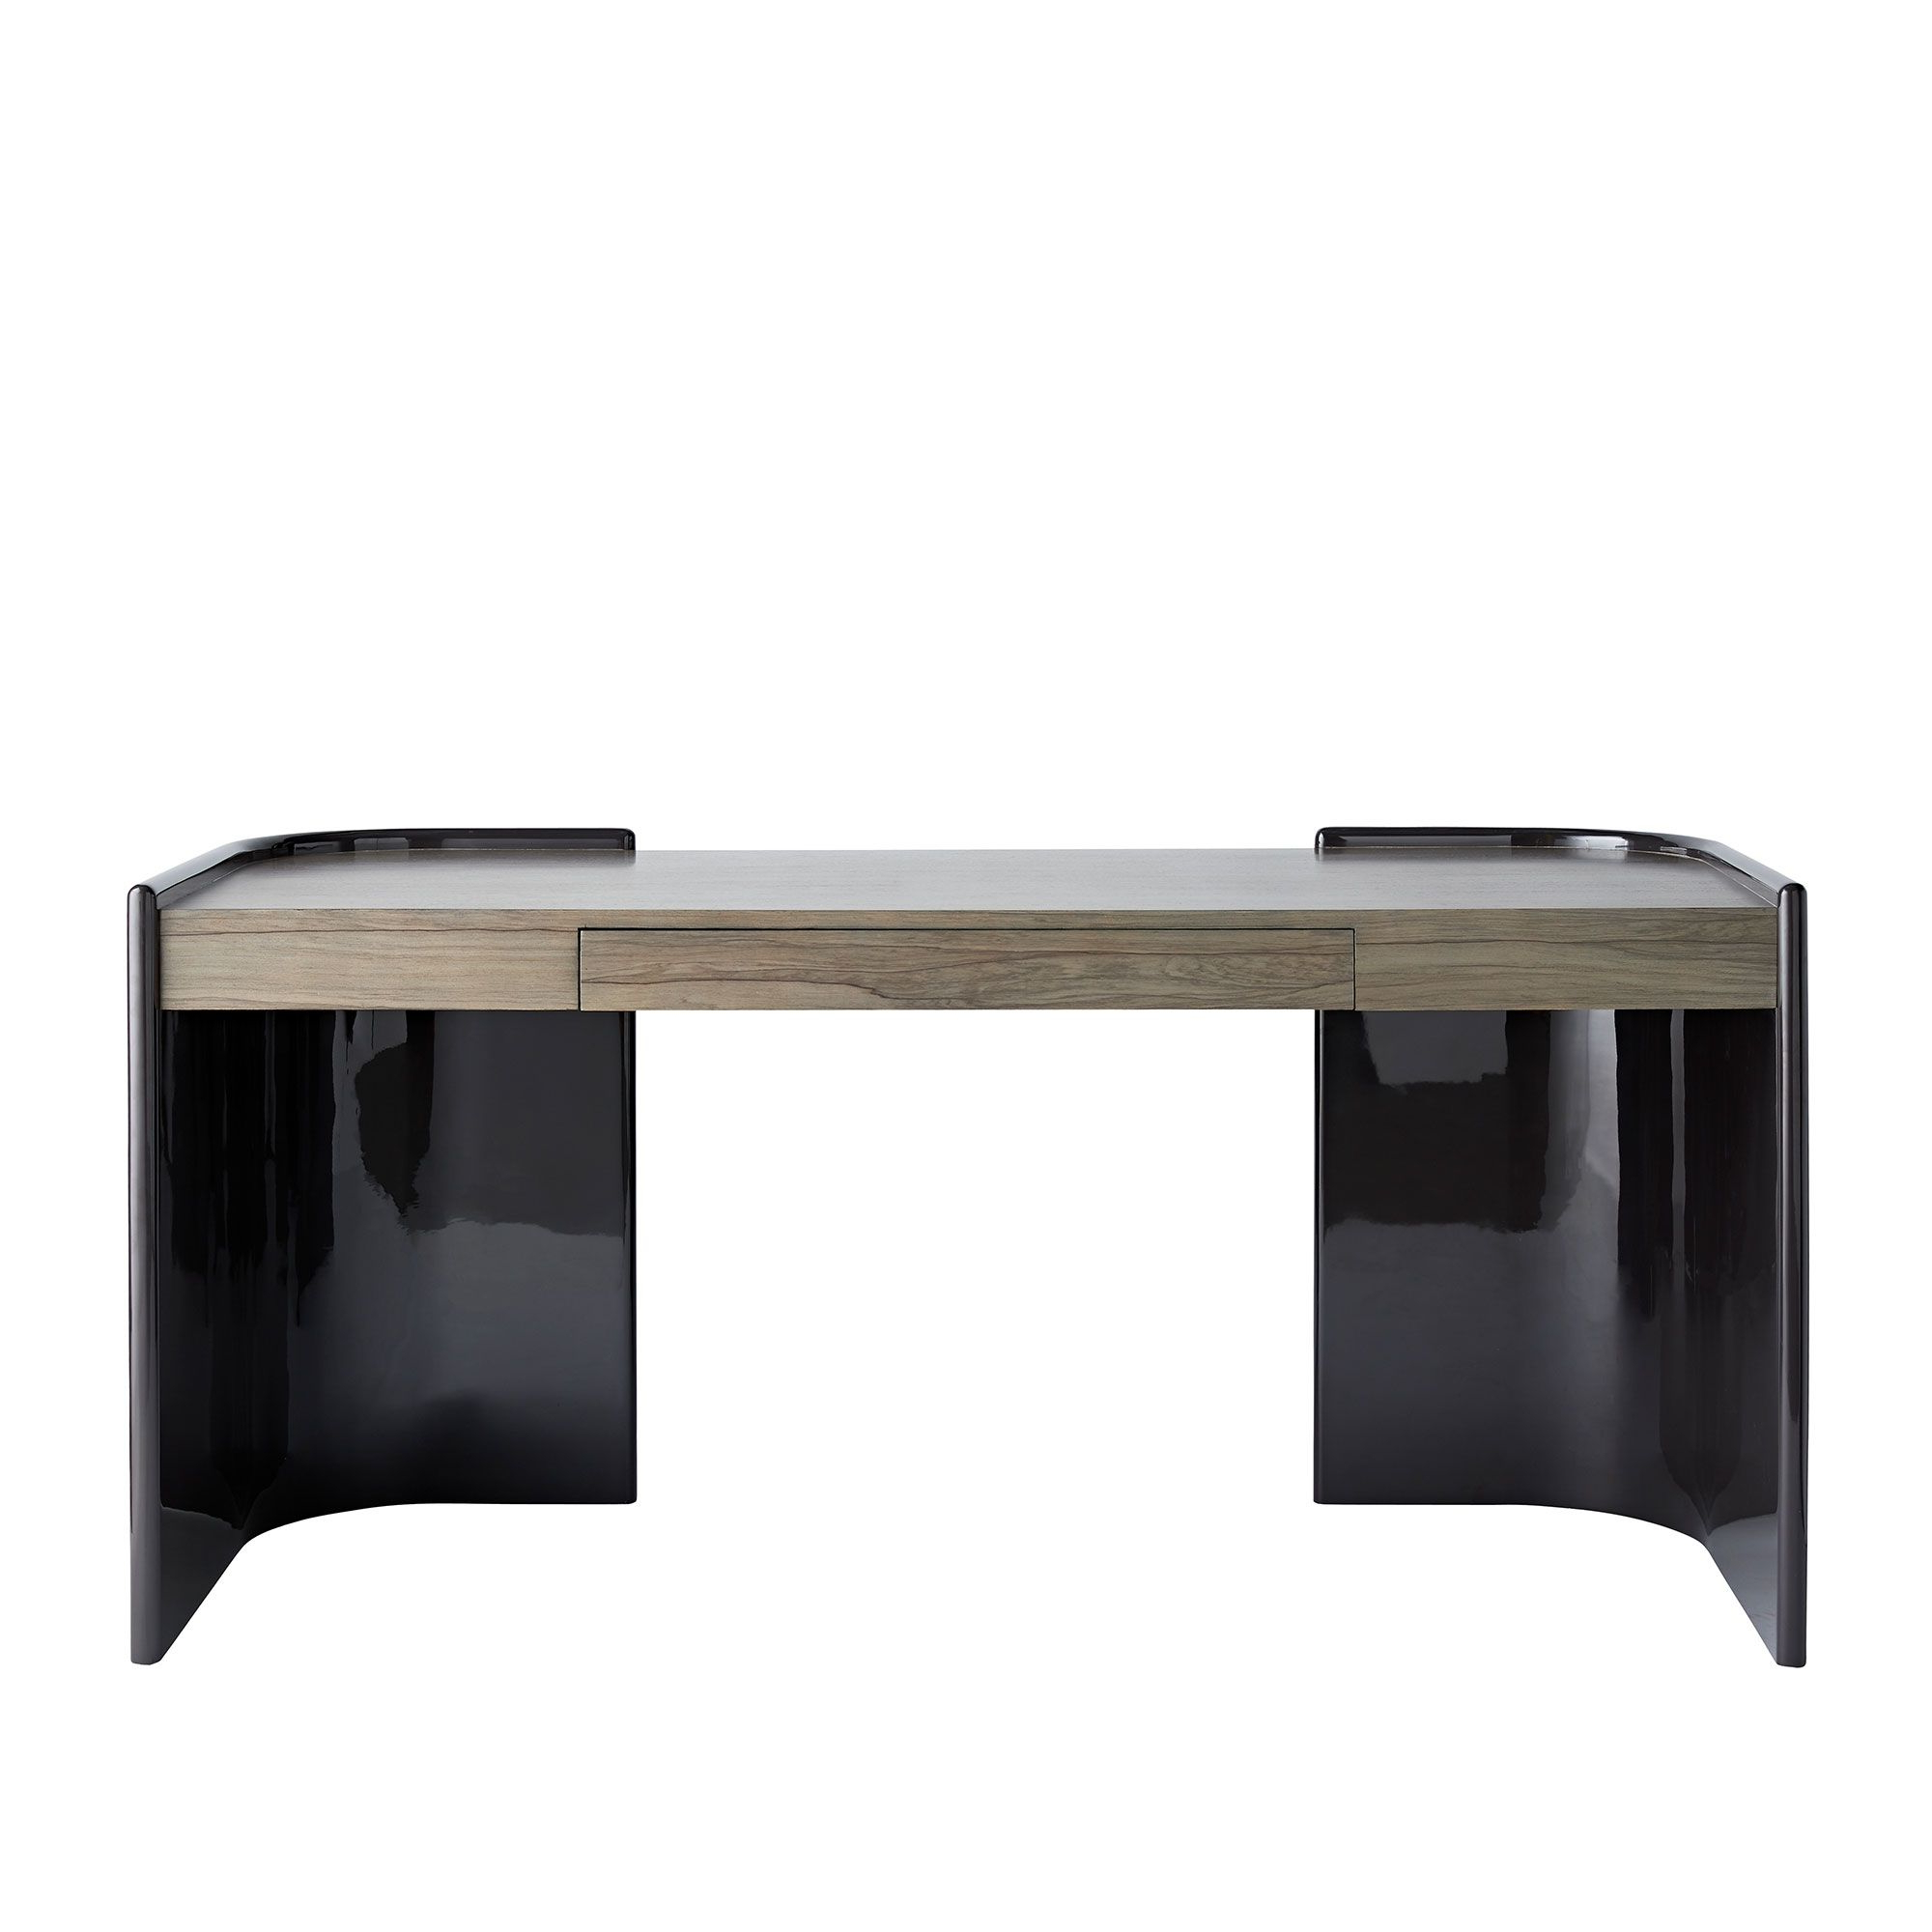 Famous Parsons Clear Glass Top & Stainless Steel Base 48X16 Console Tables Within Bette Leather Ottoman, , Hi Res (View 4 of 20)